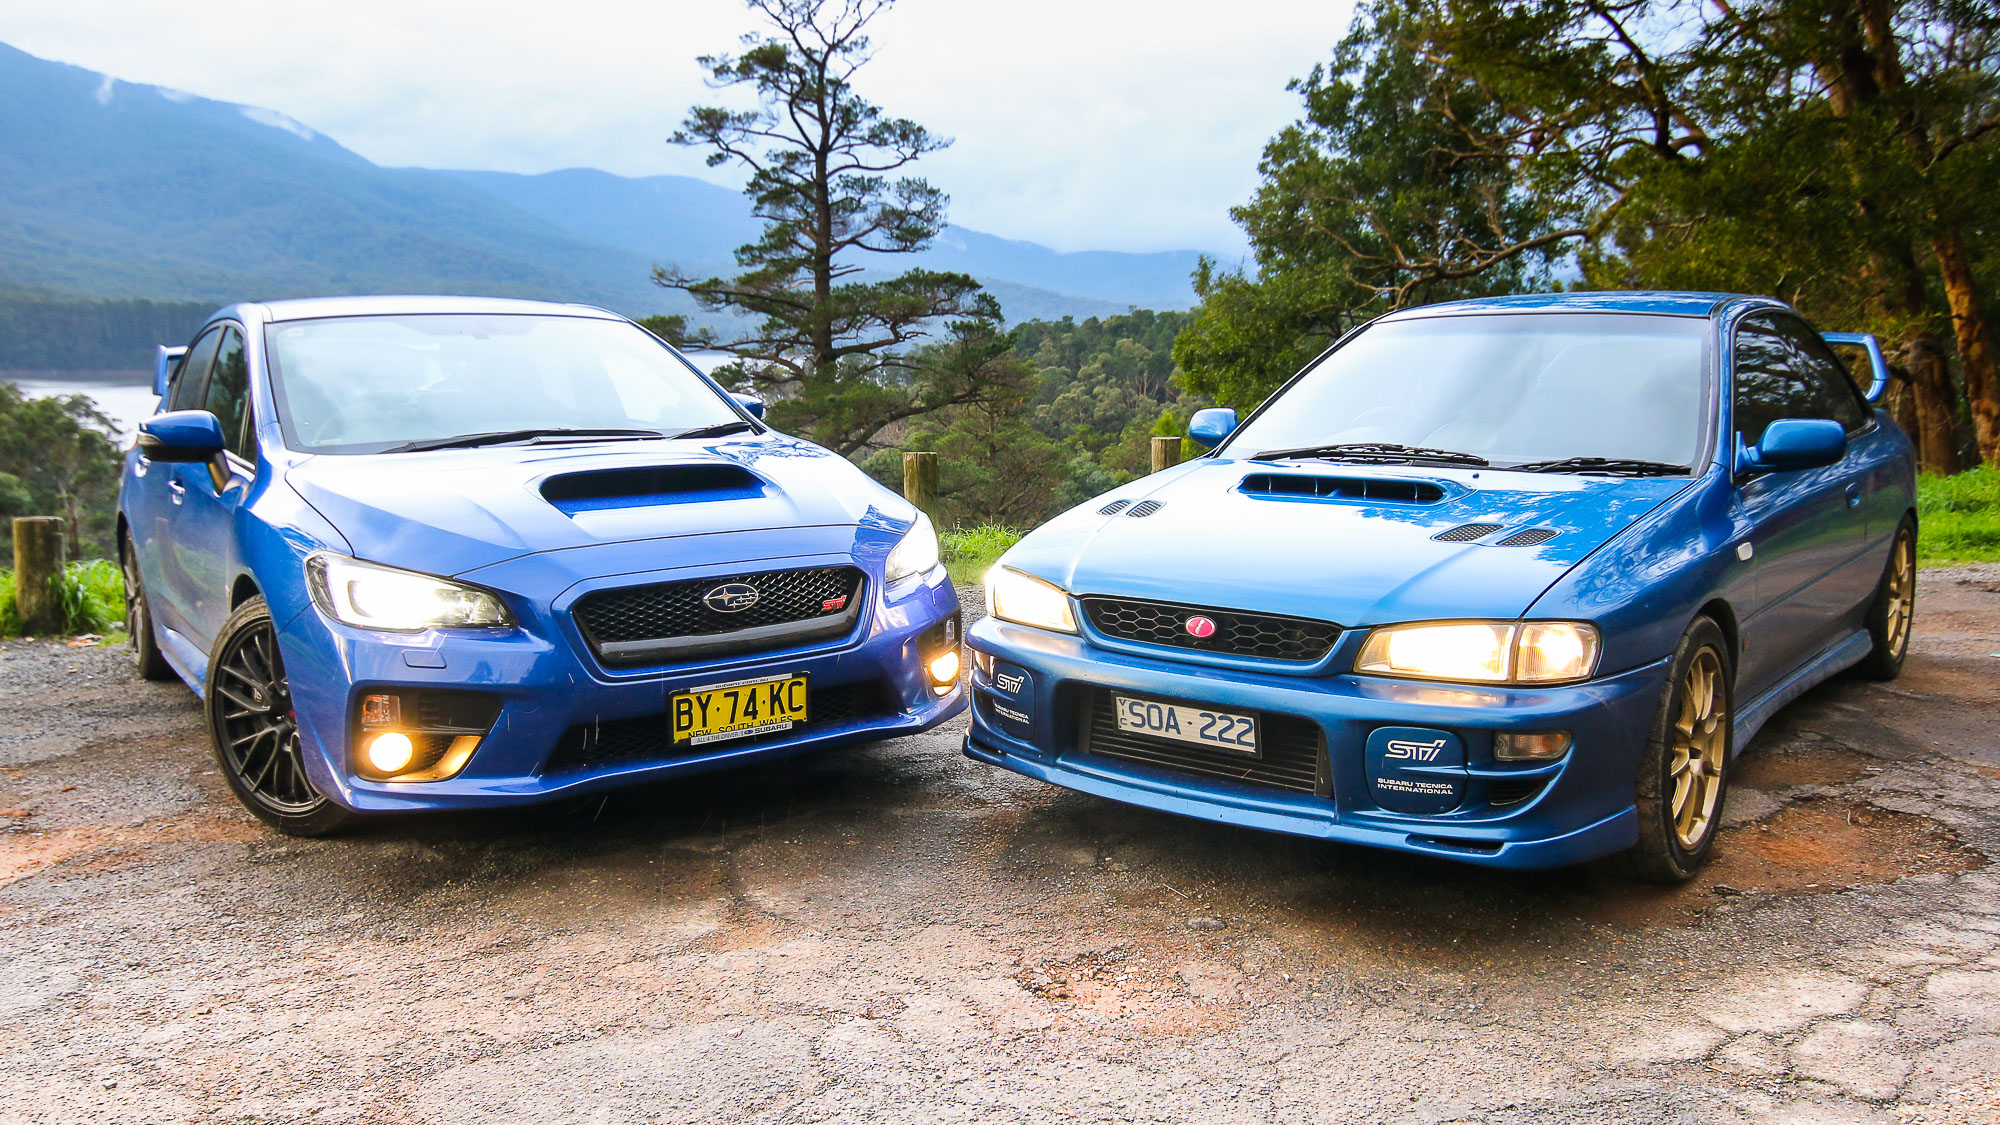 Subaru Wrx Sti Old V New Comparison 2015 Sedan V 1999 Two